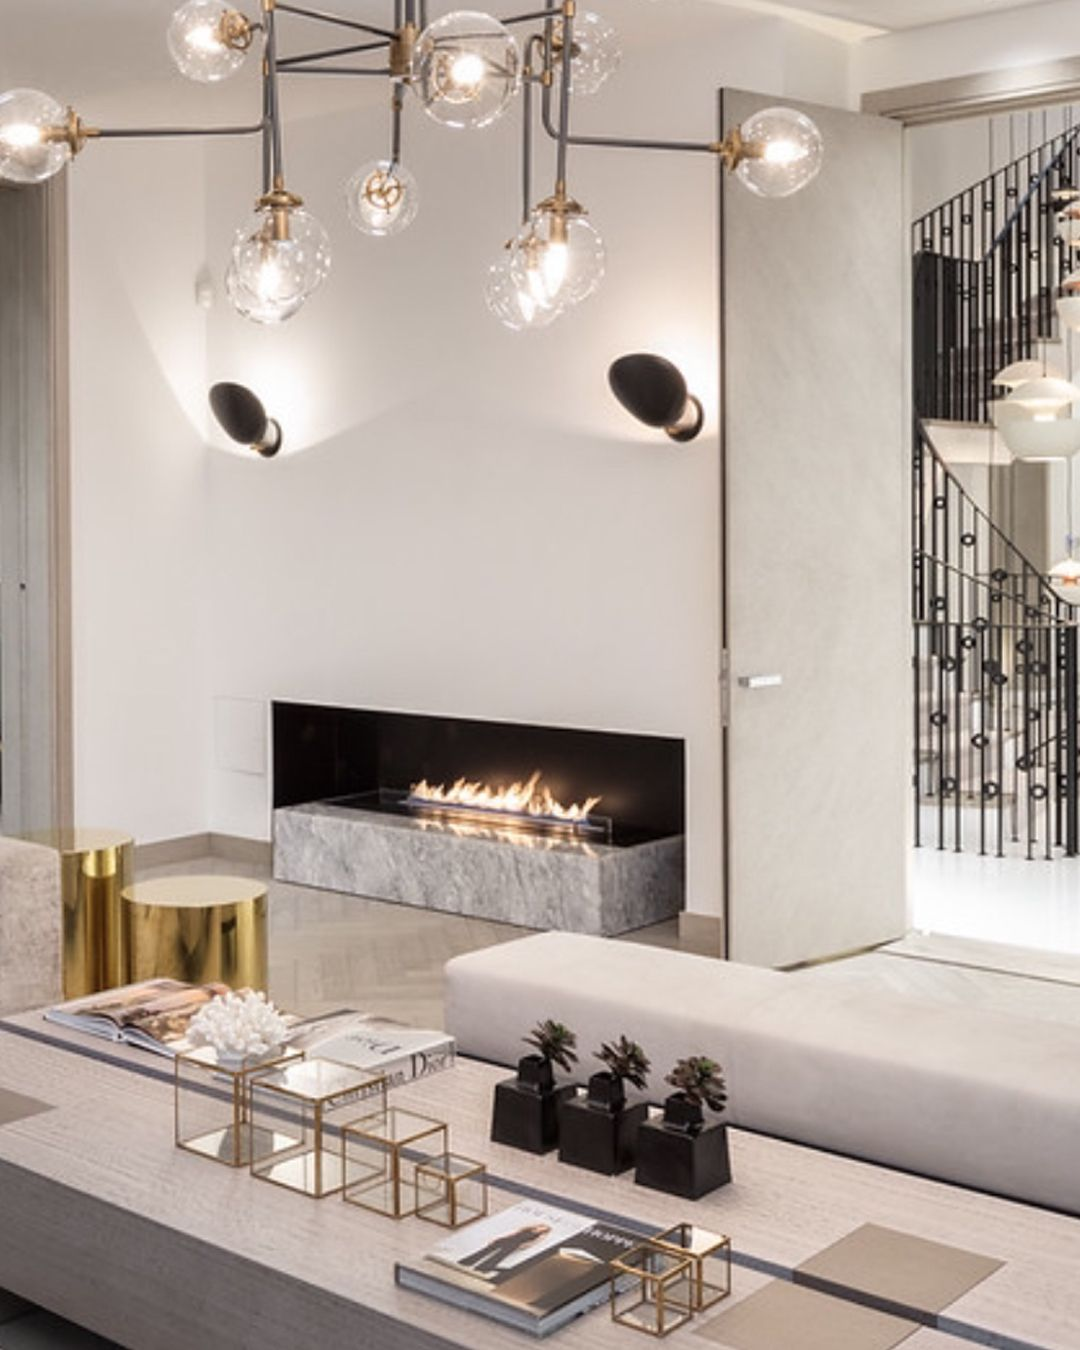 Kelly Hoppen Mbe On Instagram Simplicity Is Enough If You